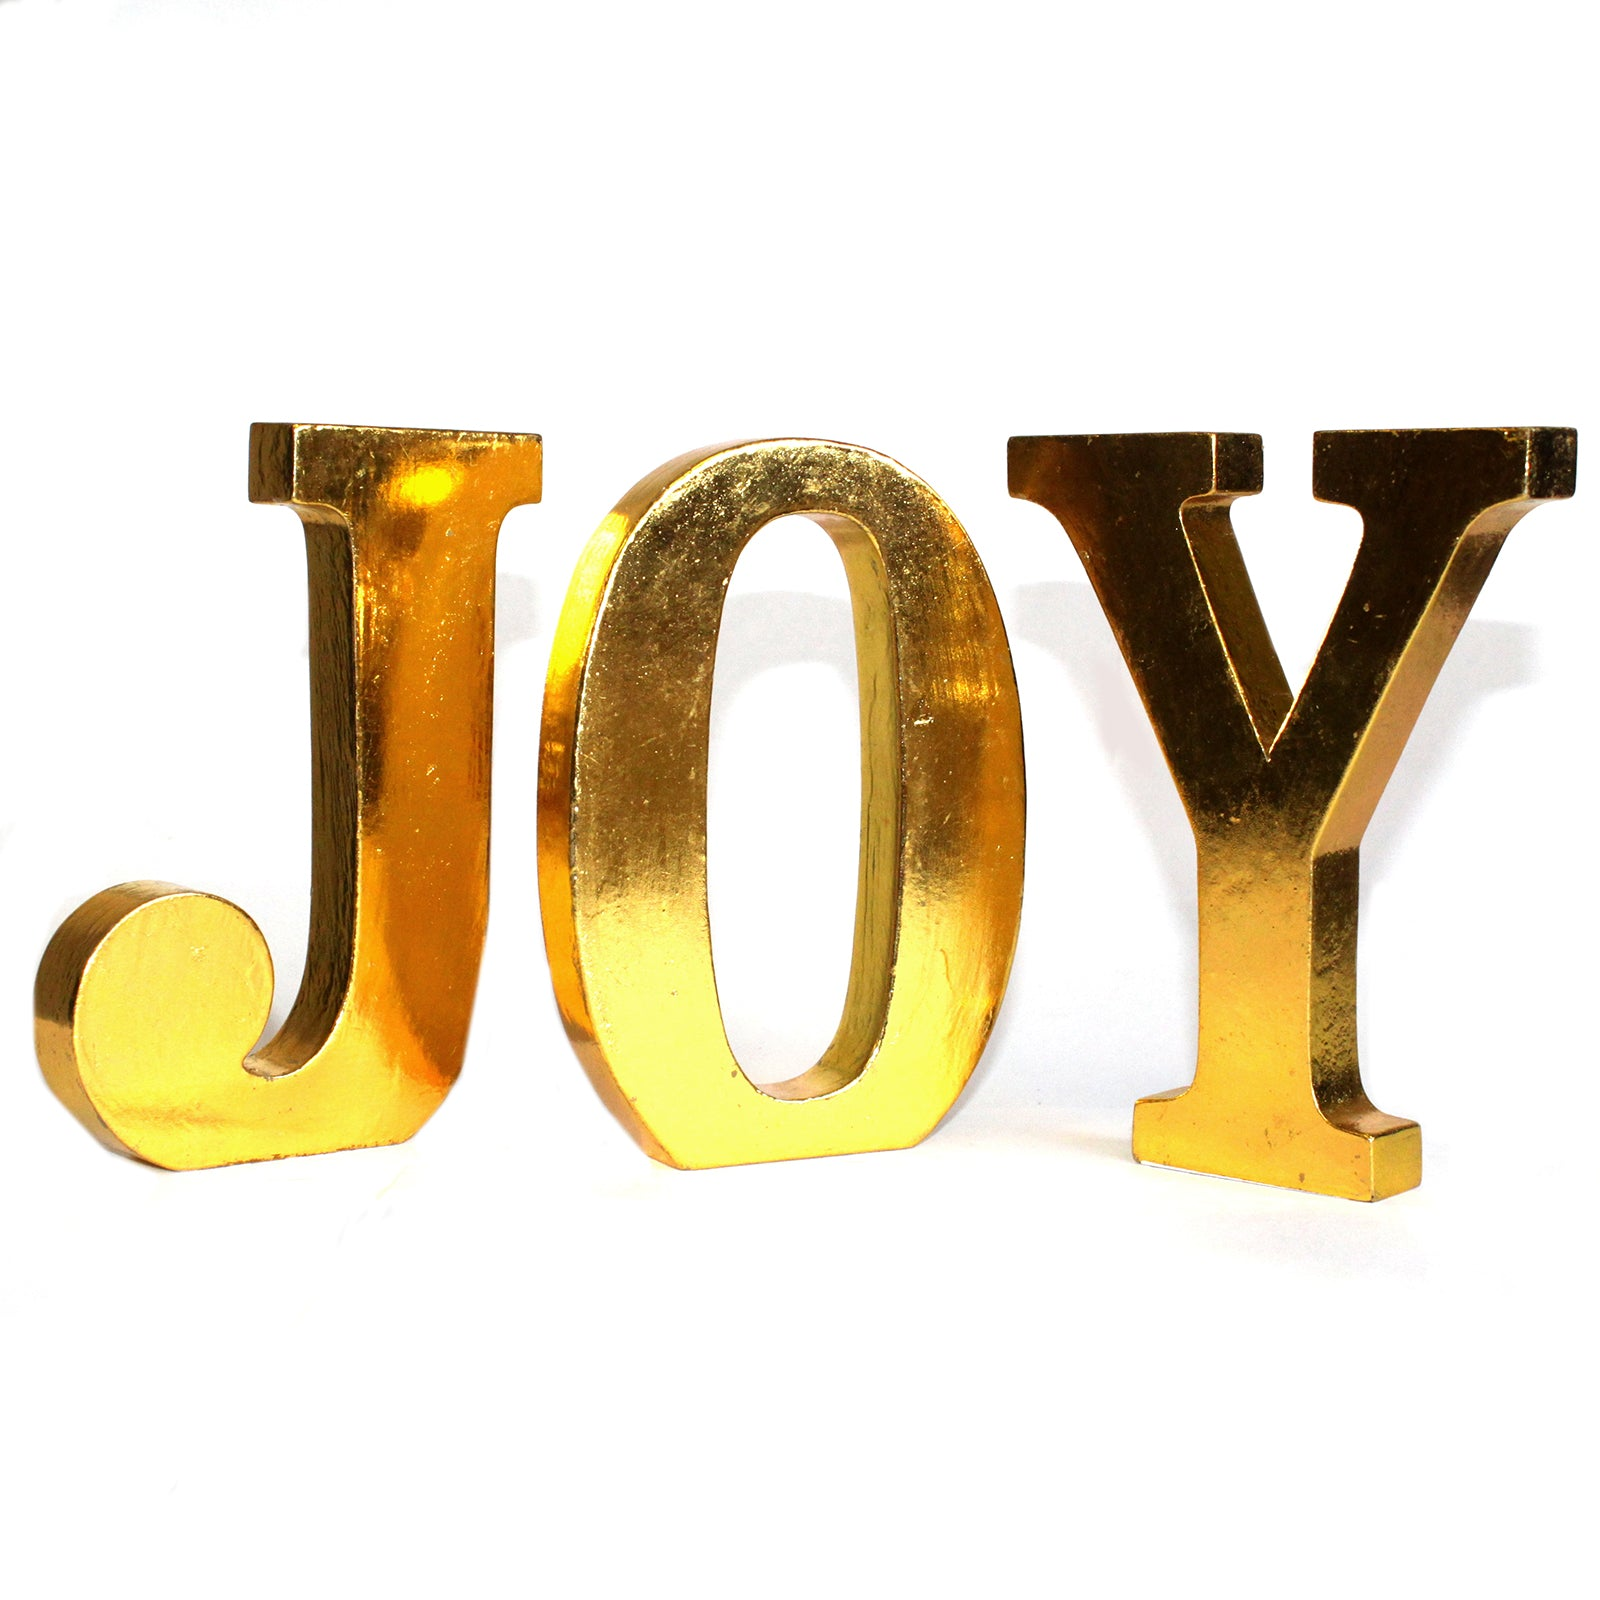 Shabby Chic Letters Gold - JOY